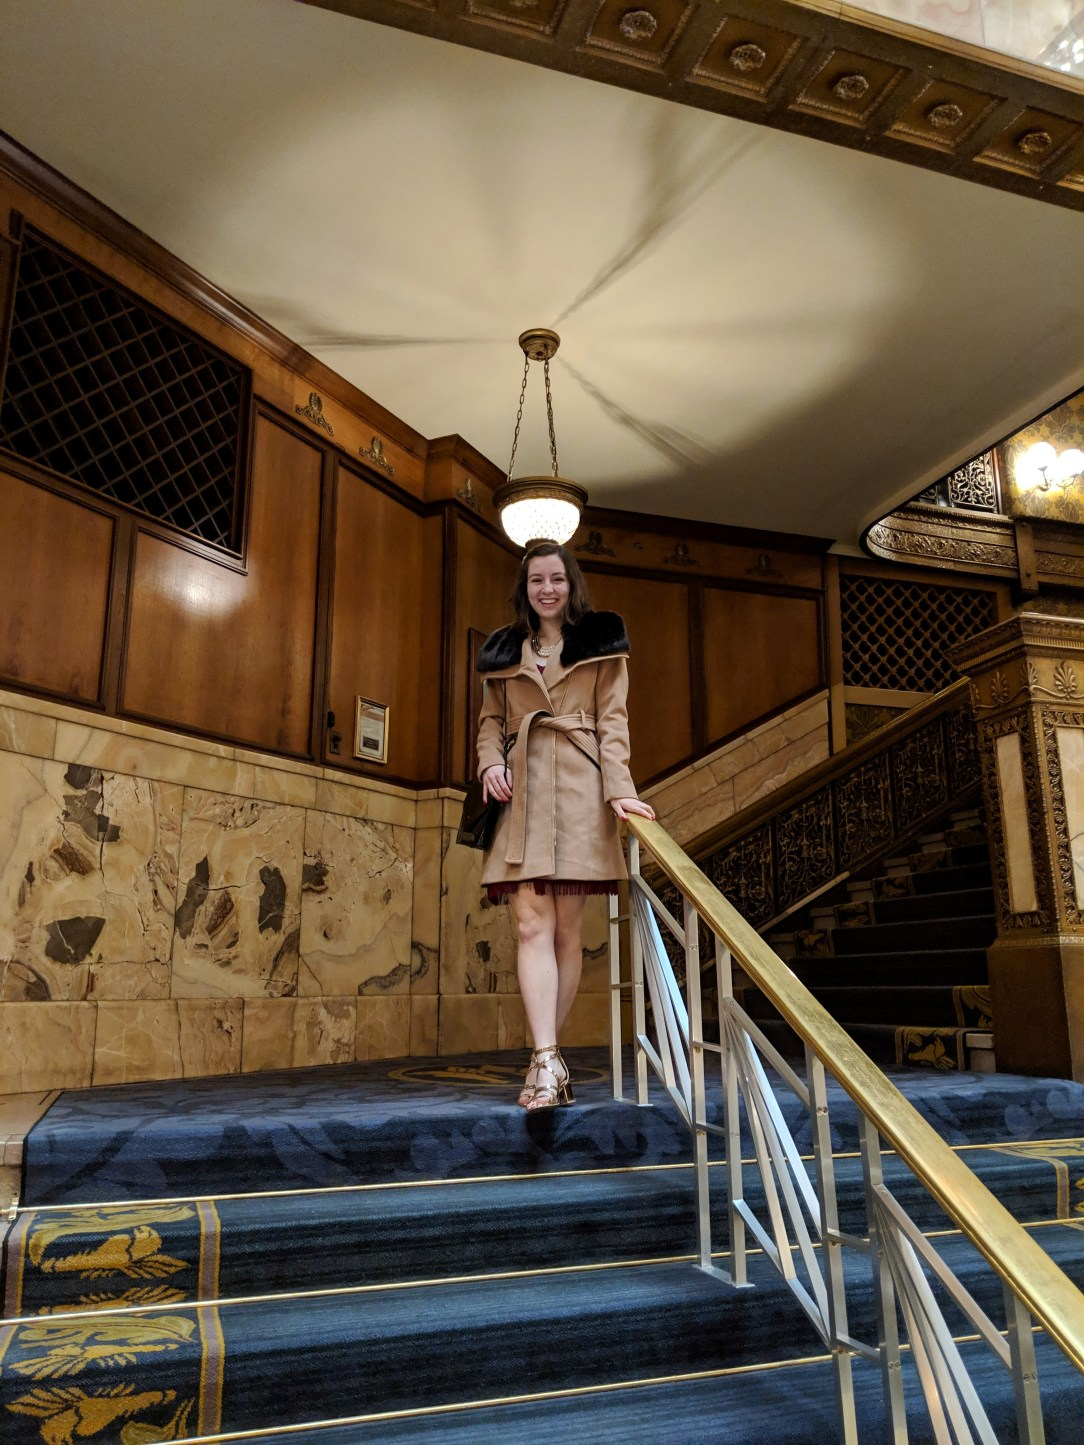 luxurious outerwear old fashioned stairs